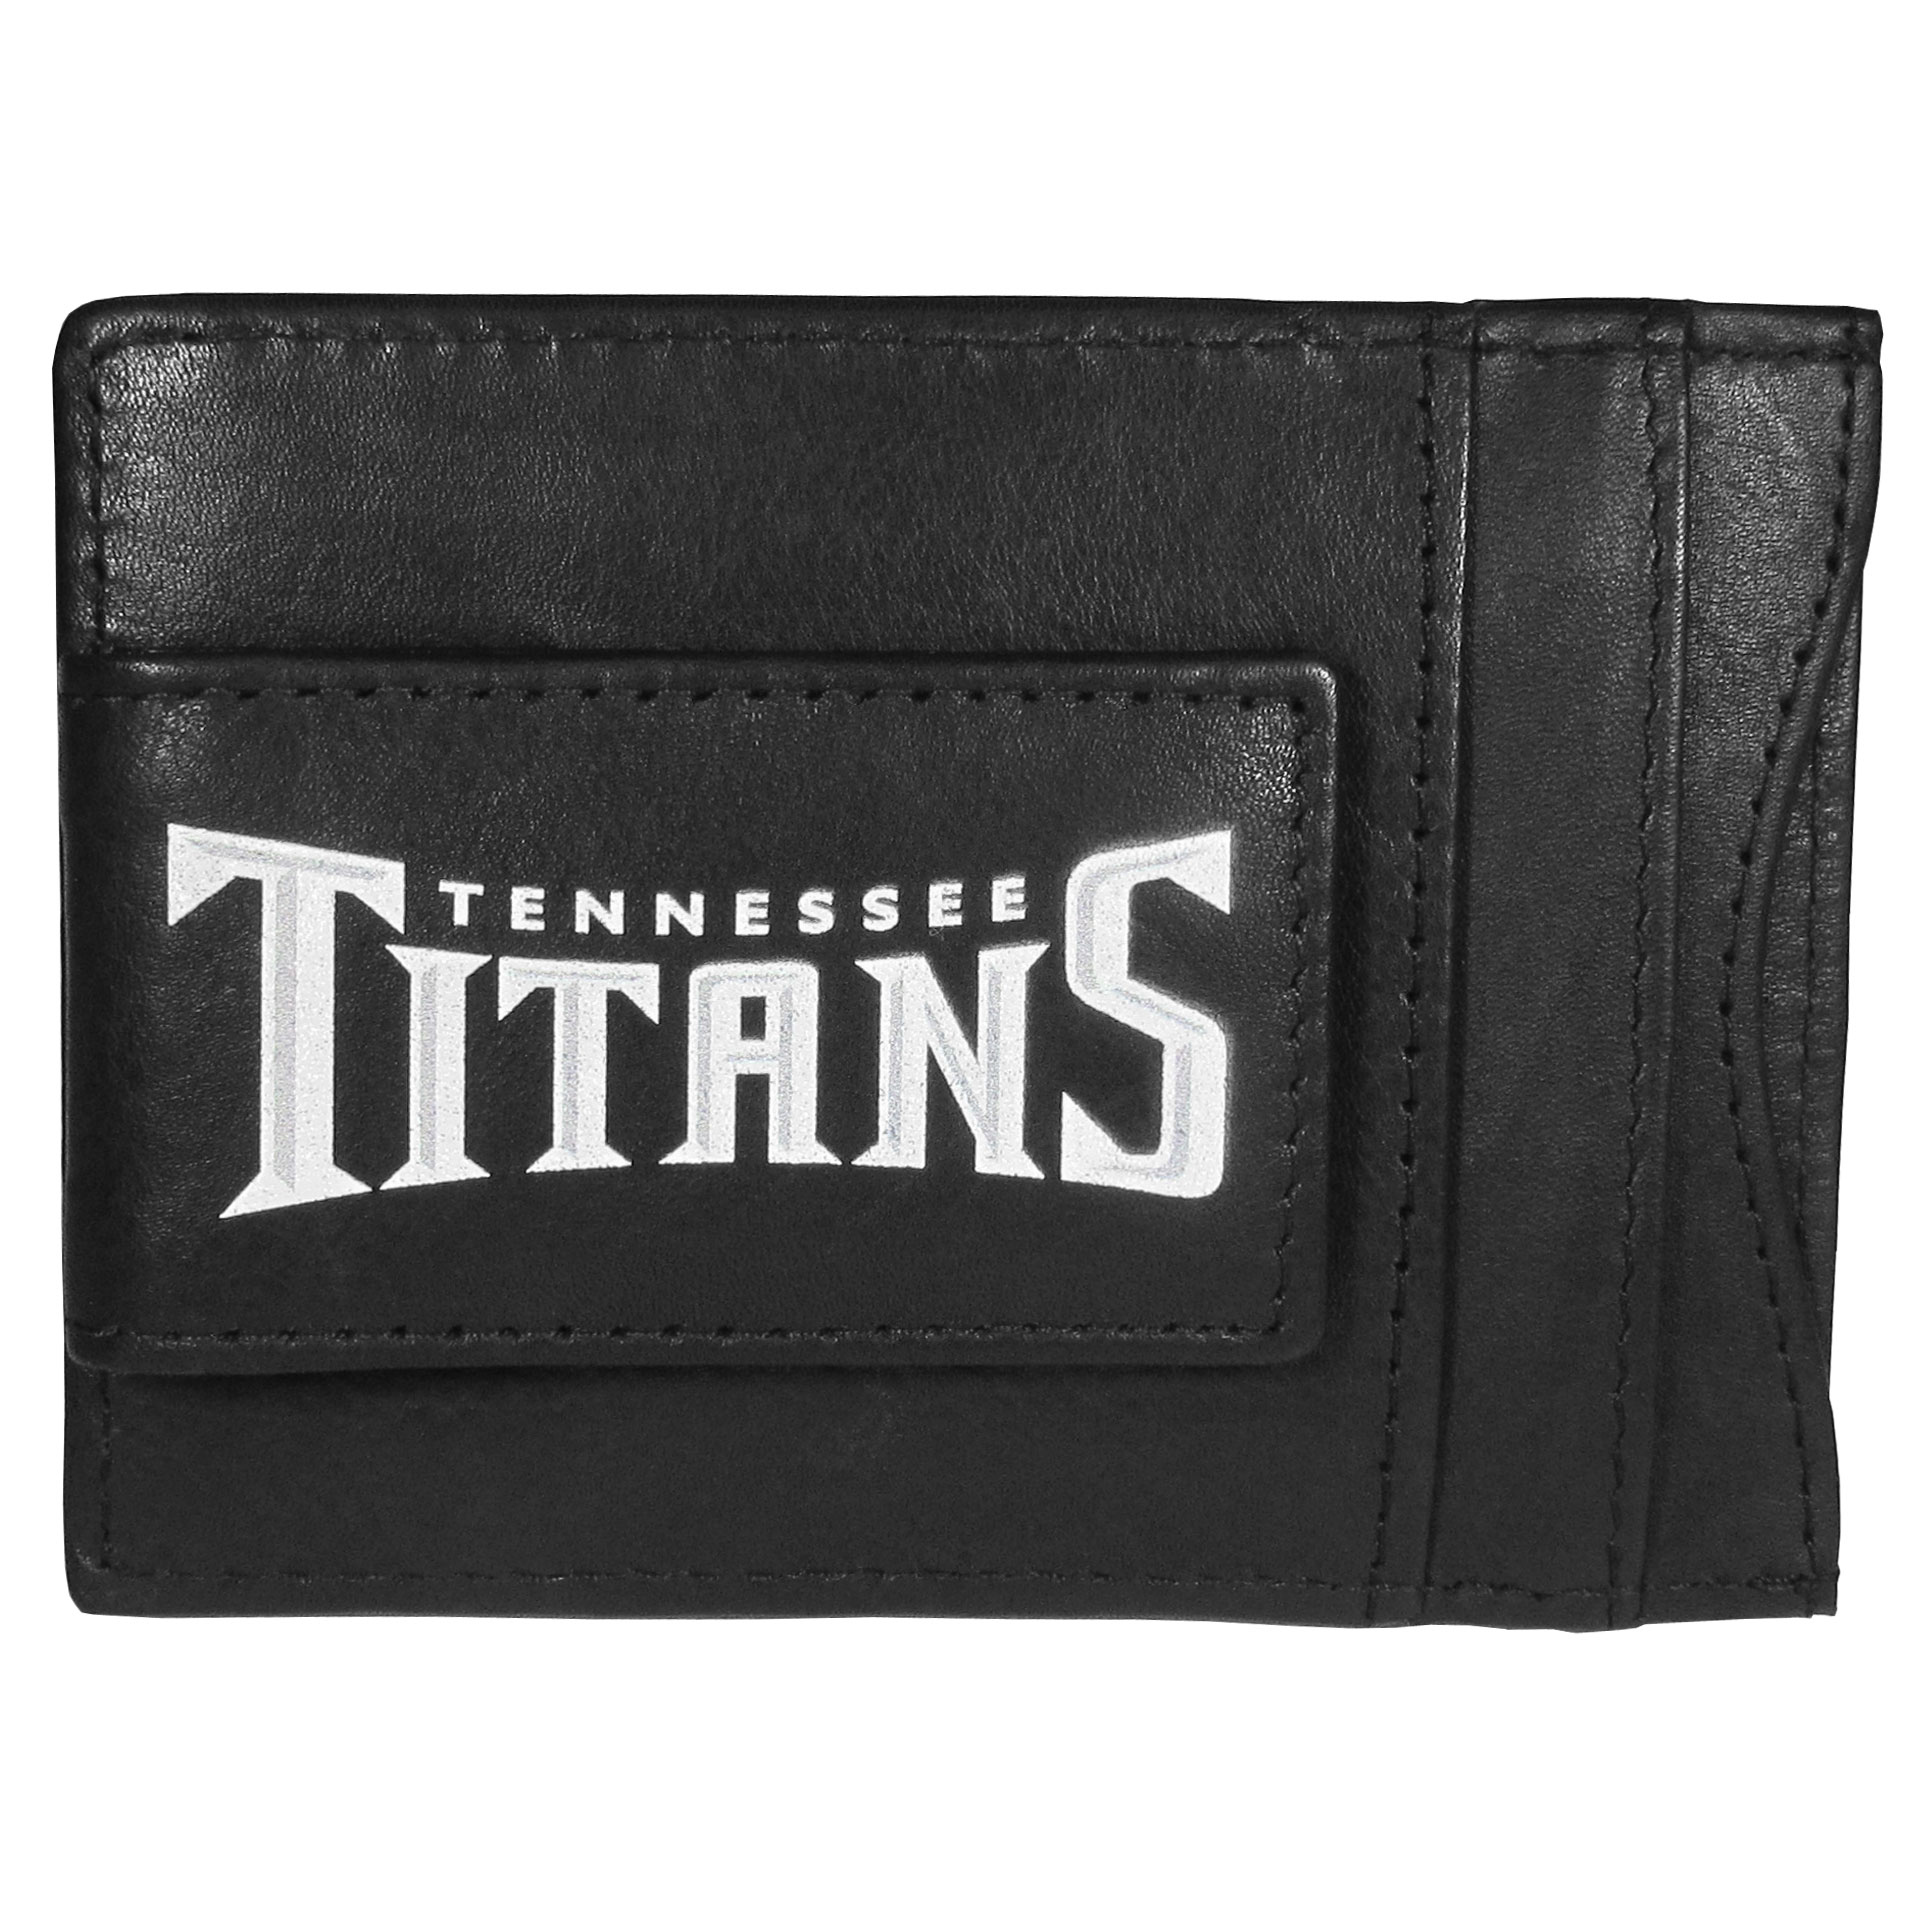 Tennessee Titans Logo Leather Cash and Cardholder - This super slim leather wallet lets you have all the benefits of a money clip while keeping the organization of a wallet. On one side of this front pocket wallet there is a strong, magnetic money clip to keep your cash easily accessible and the?Tennessee Titans team logo on the front. The versatile men's accessory is a perfect addition to your fan apparel.